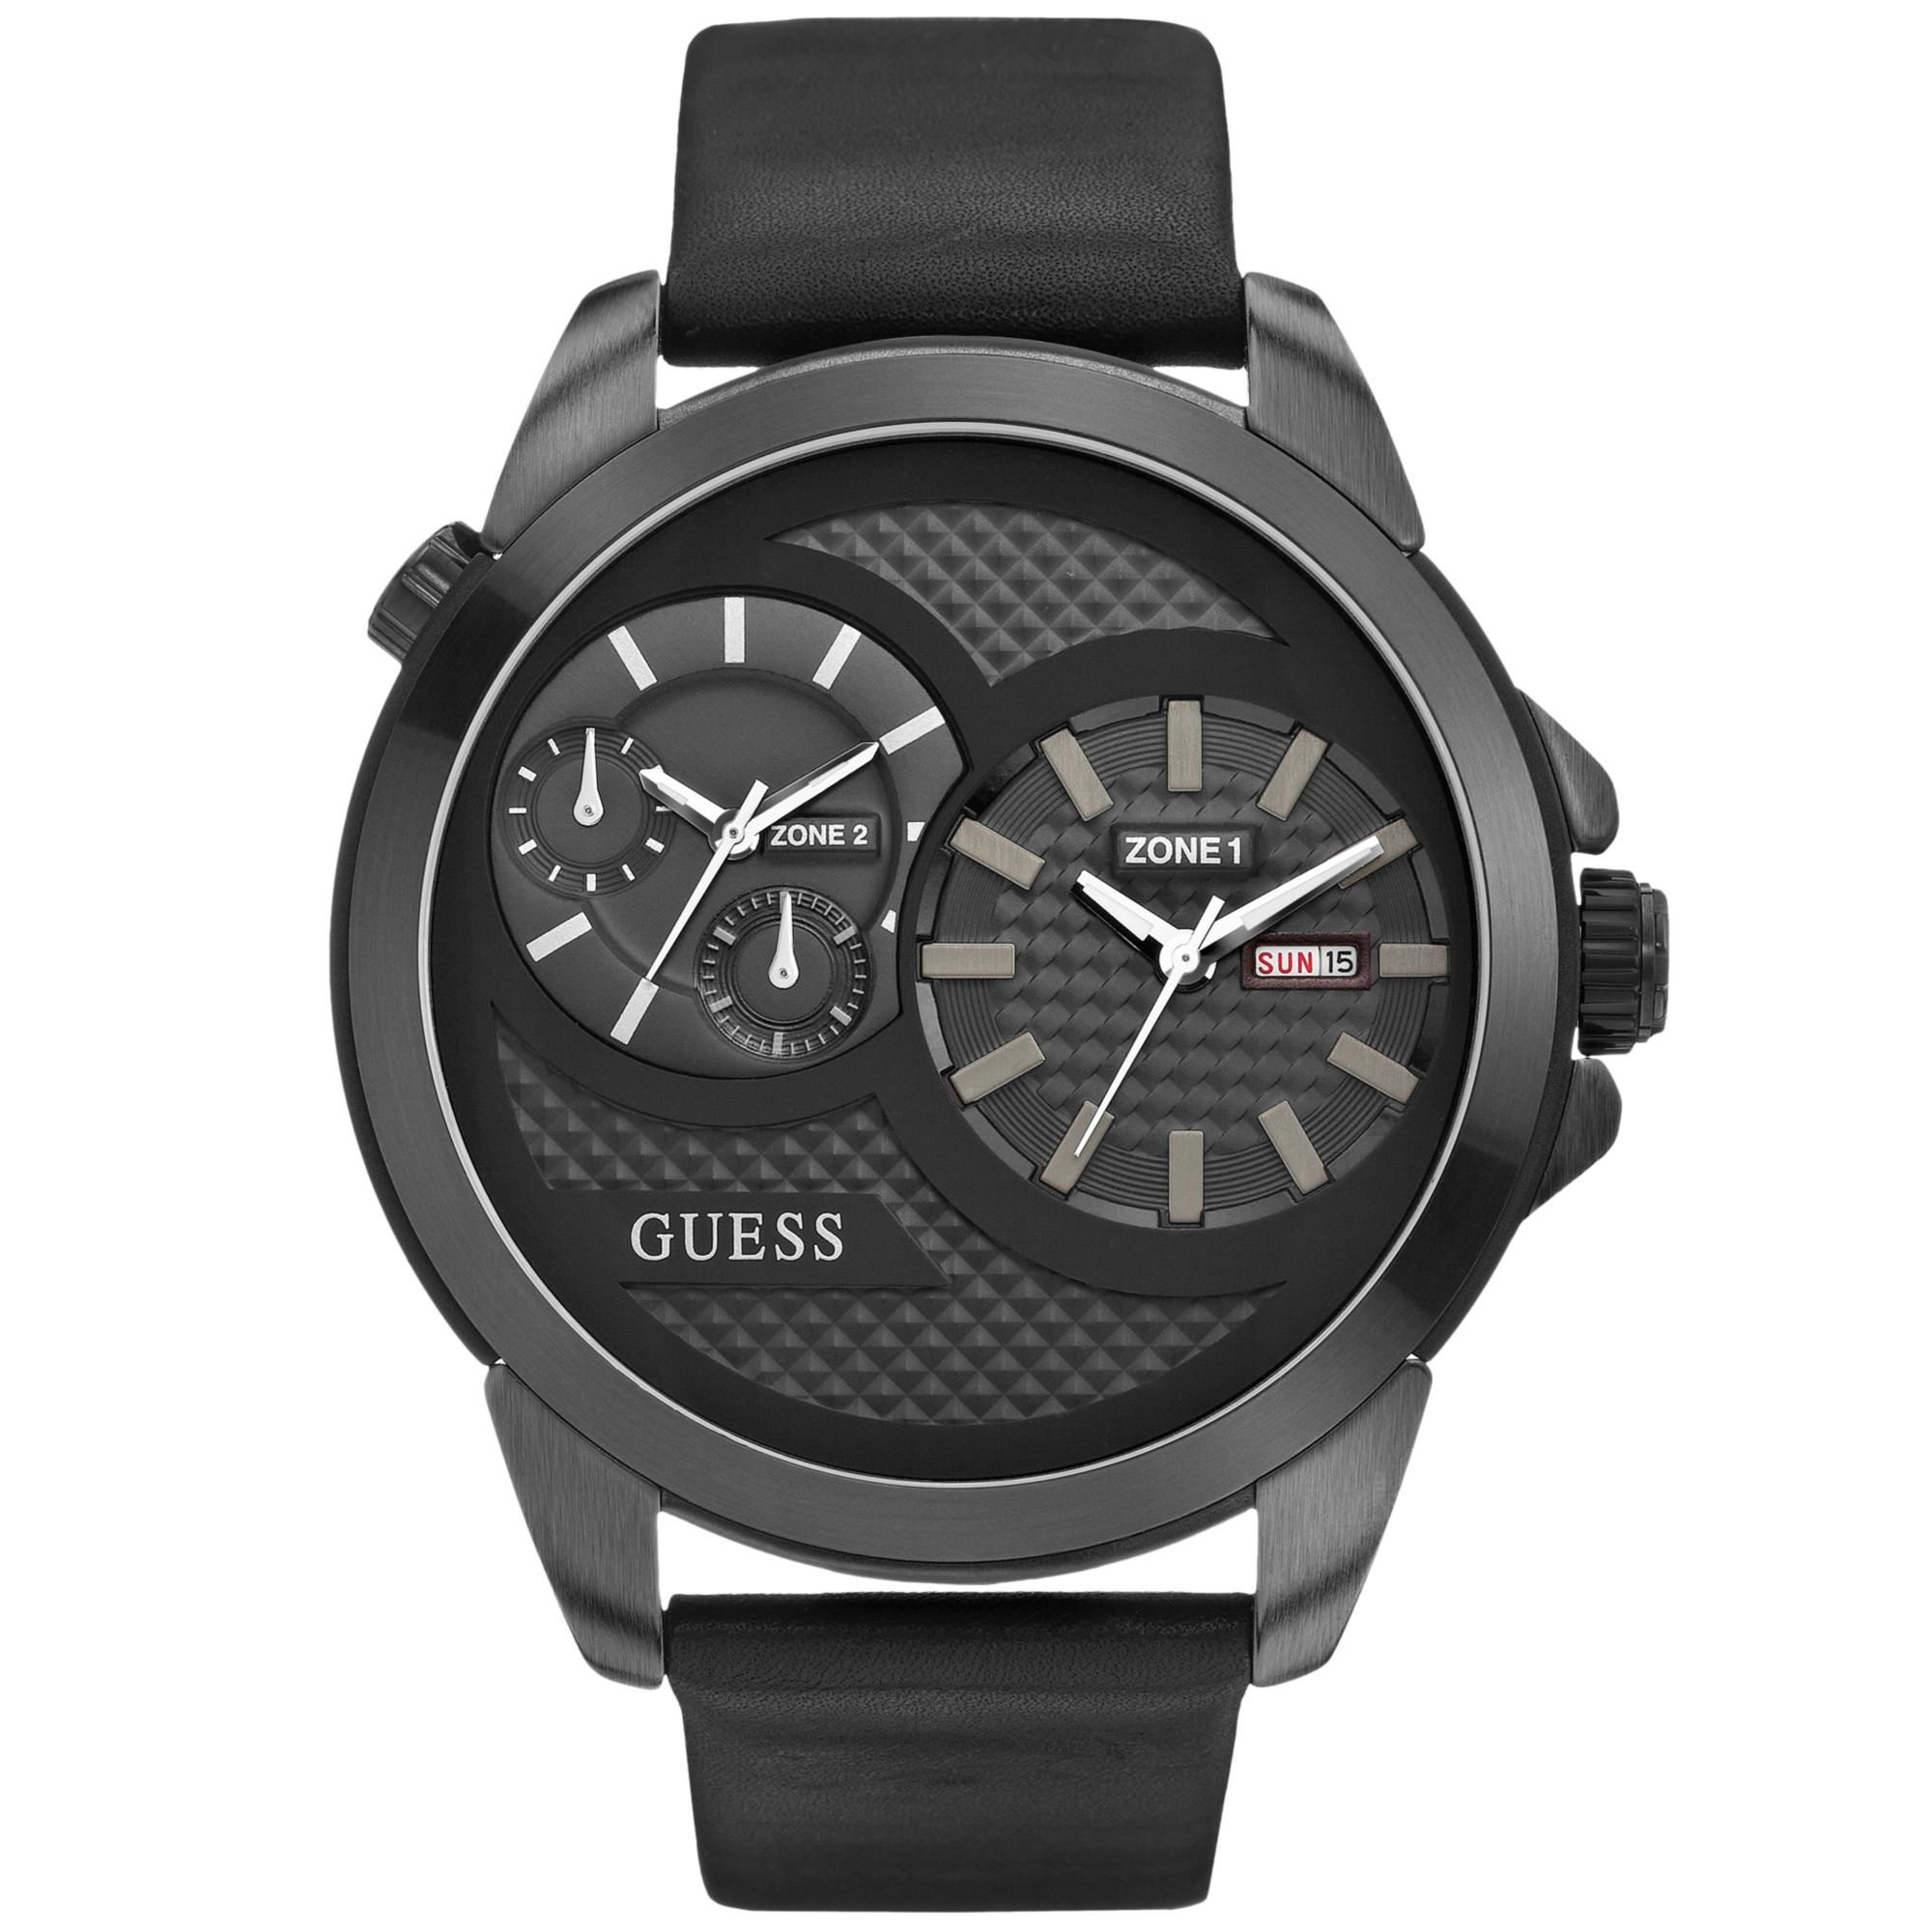 guess watch men 39 s dual time black leather strap 55mm. Black Bedroom Furniture Sets. Home Design Ideas